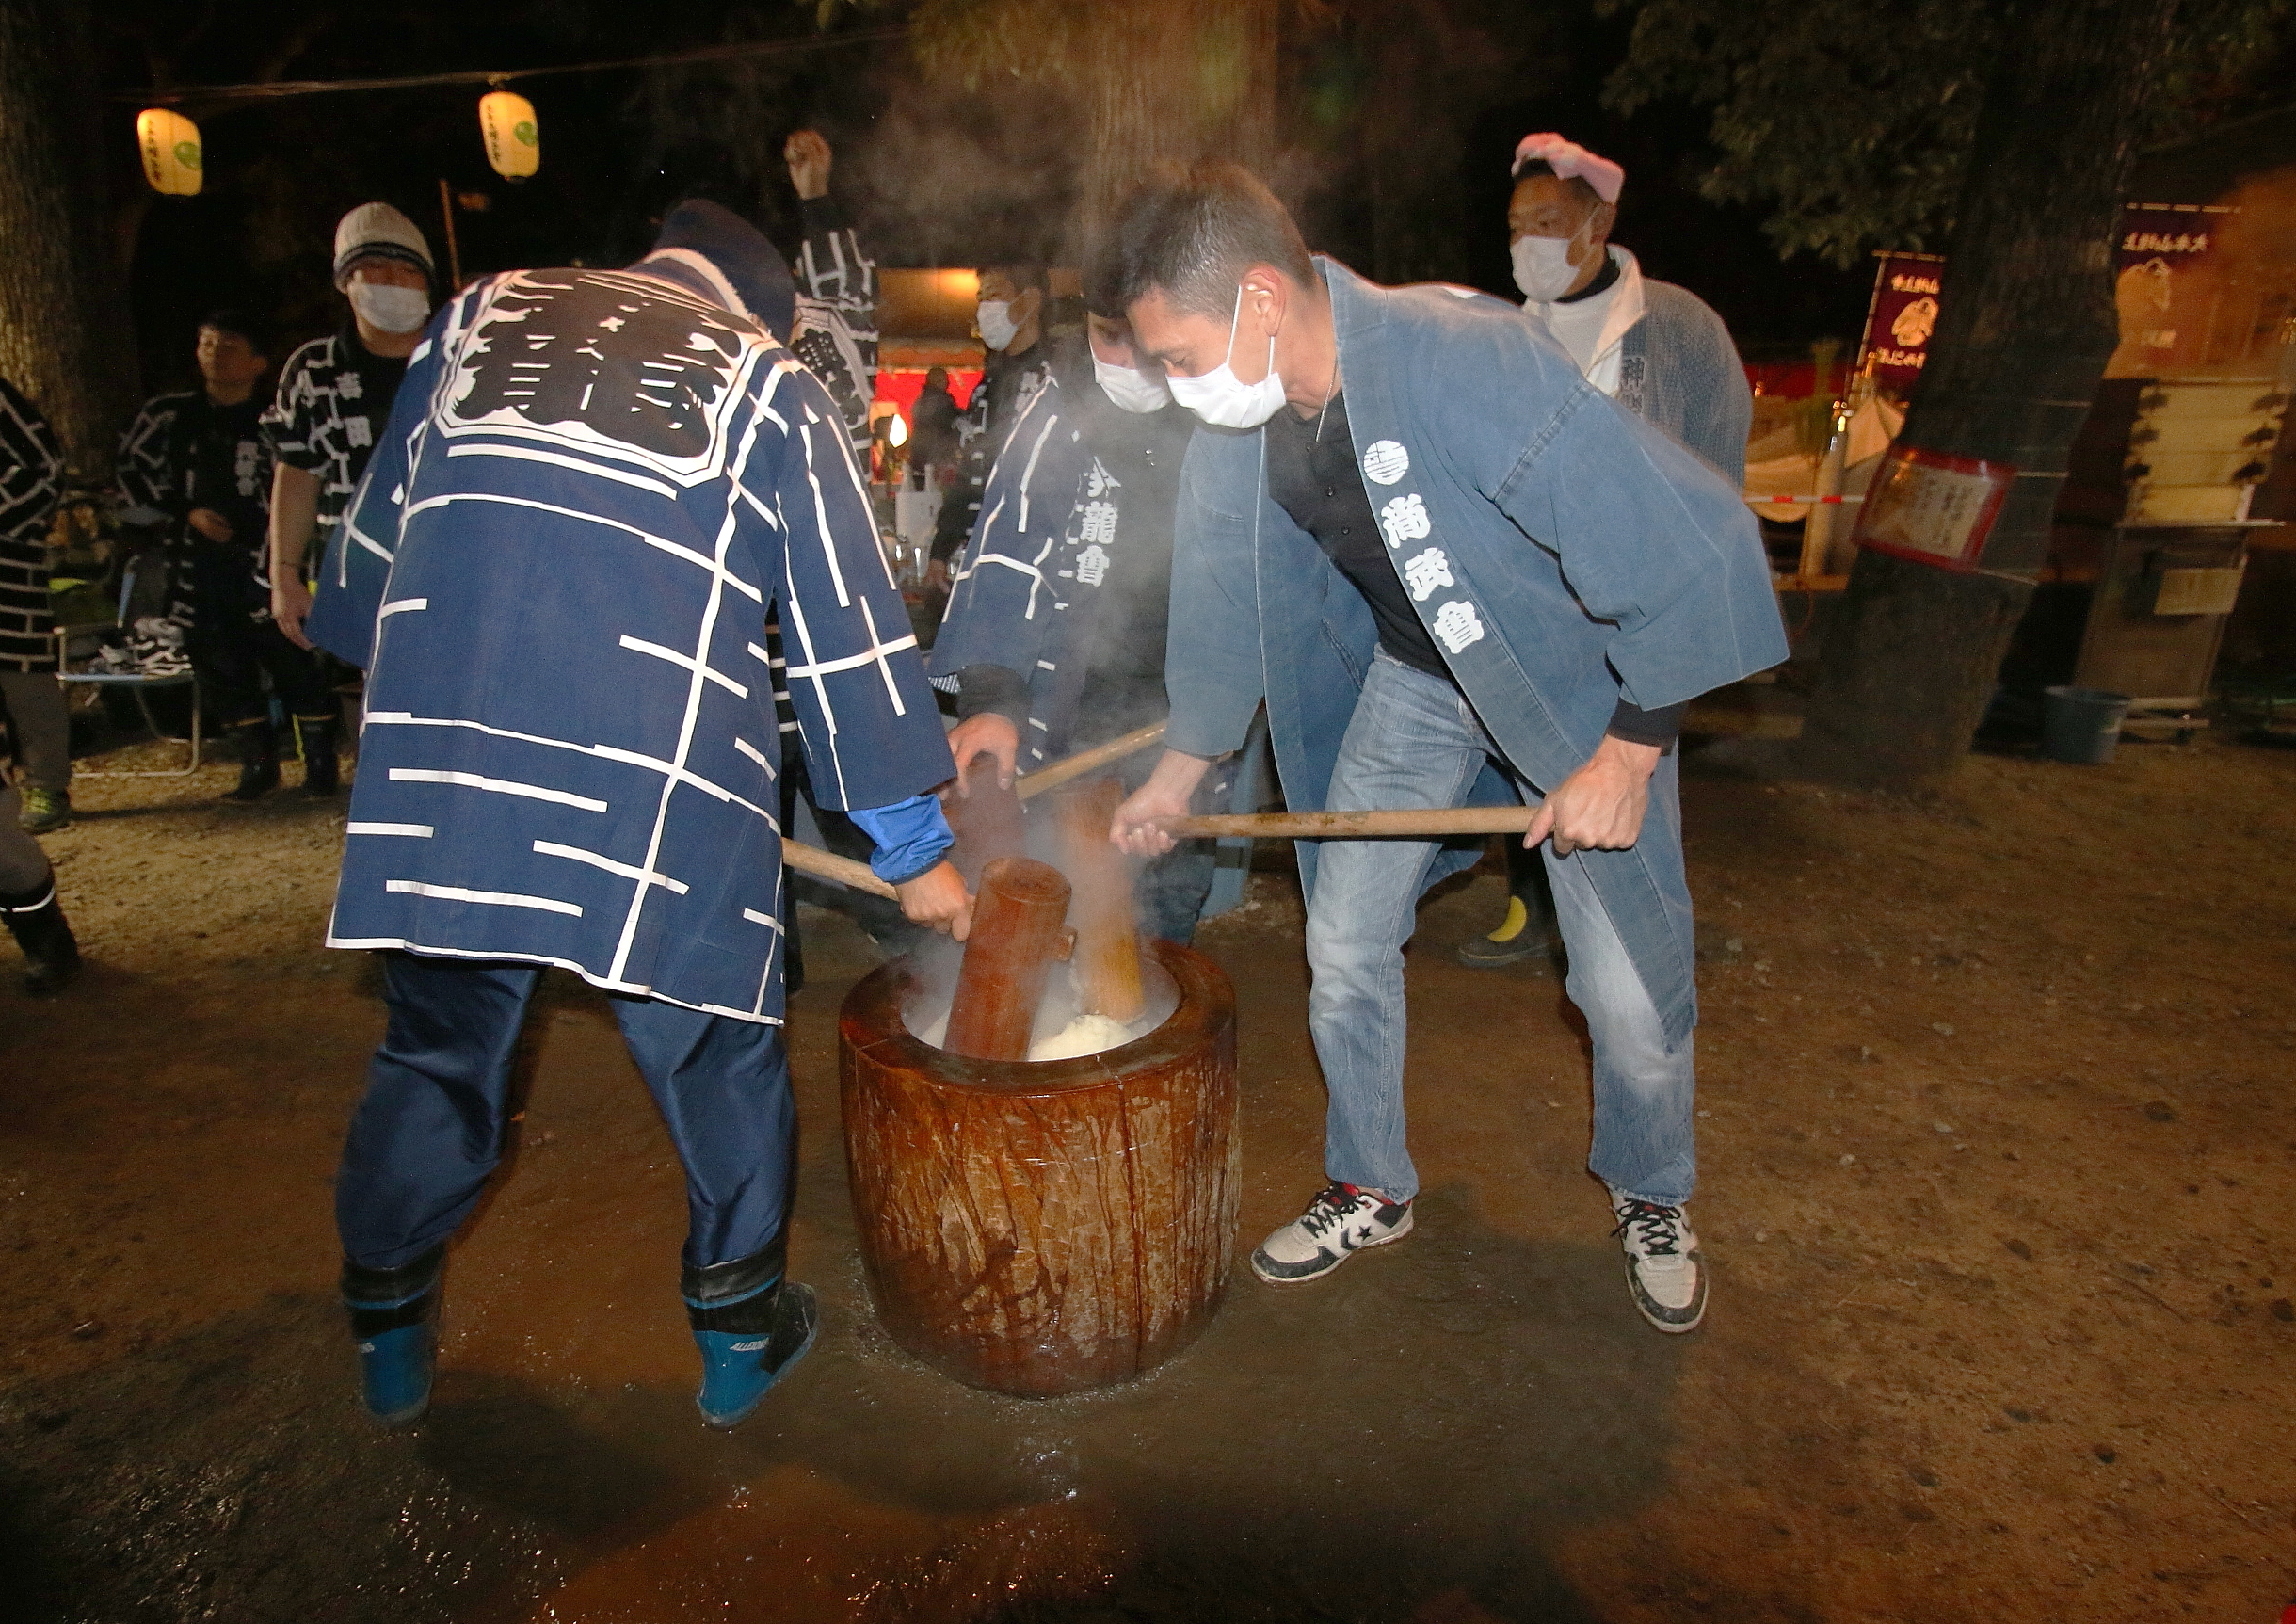 Men pound mochi with a mortar and pestle